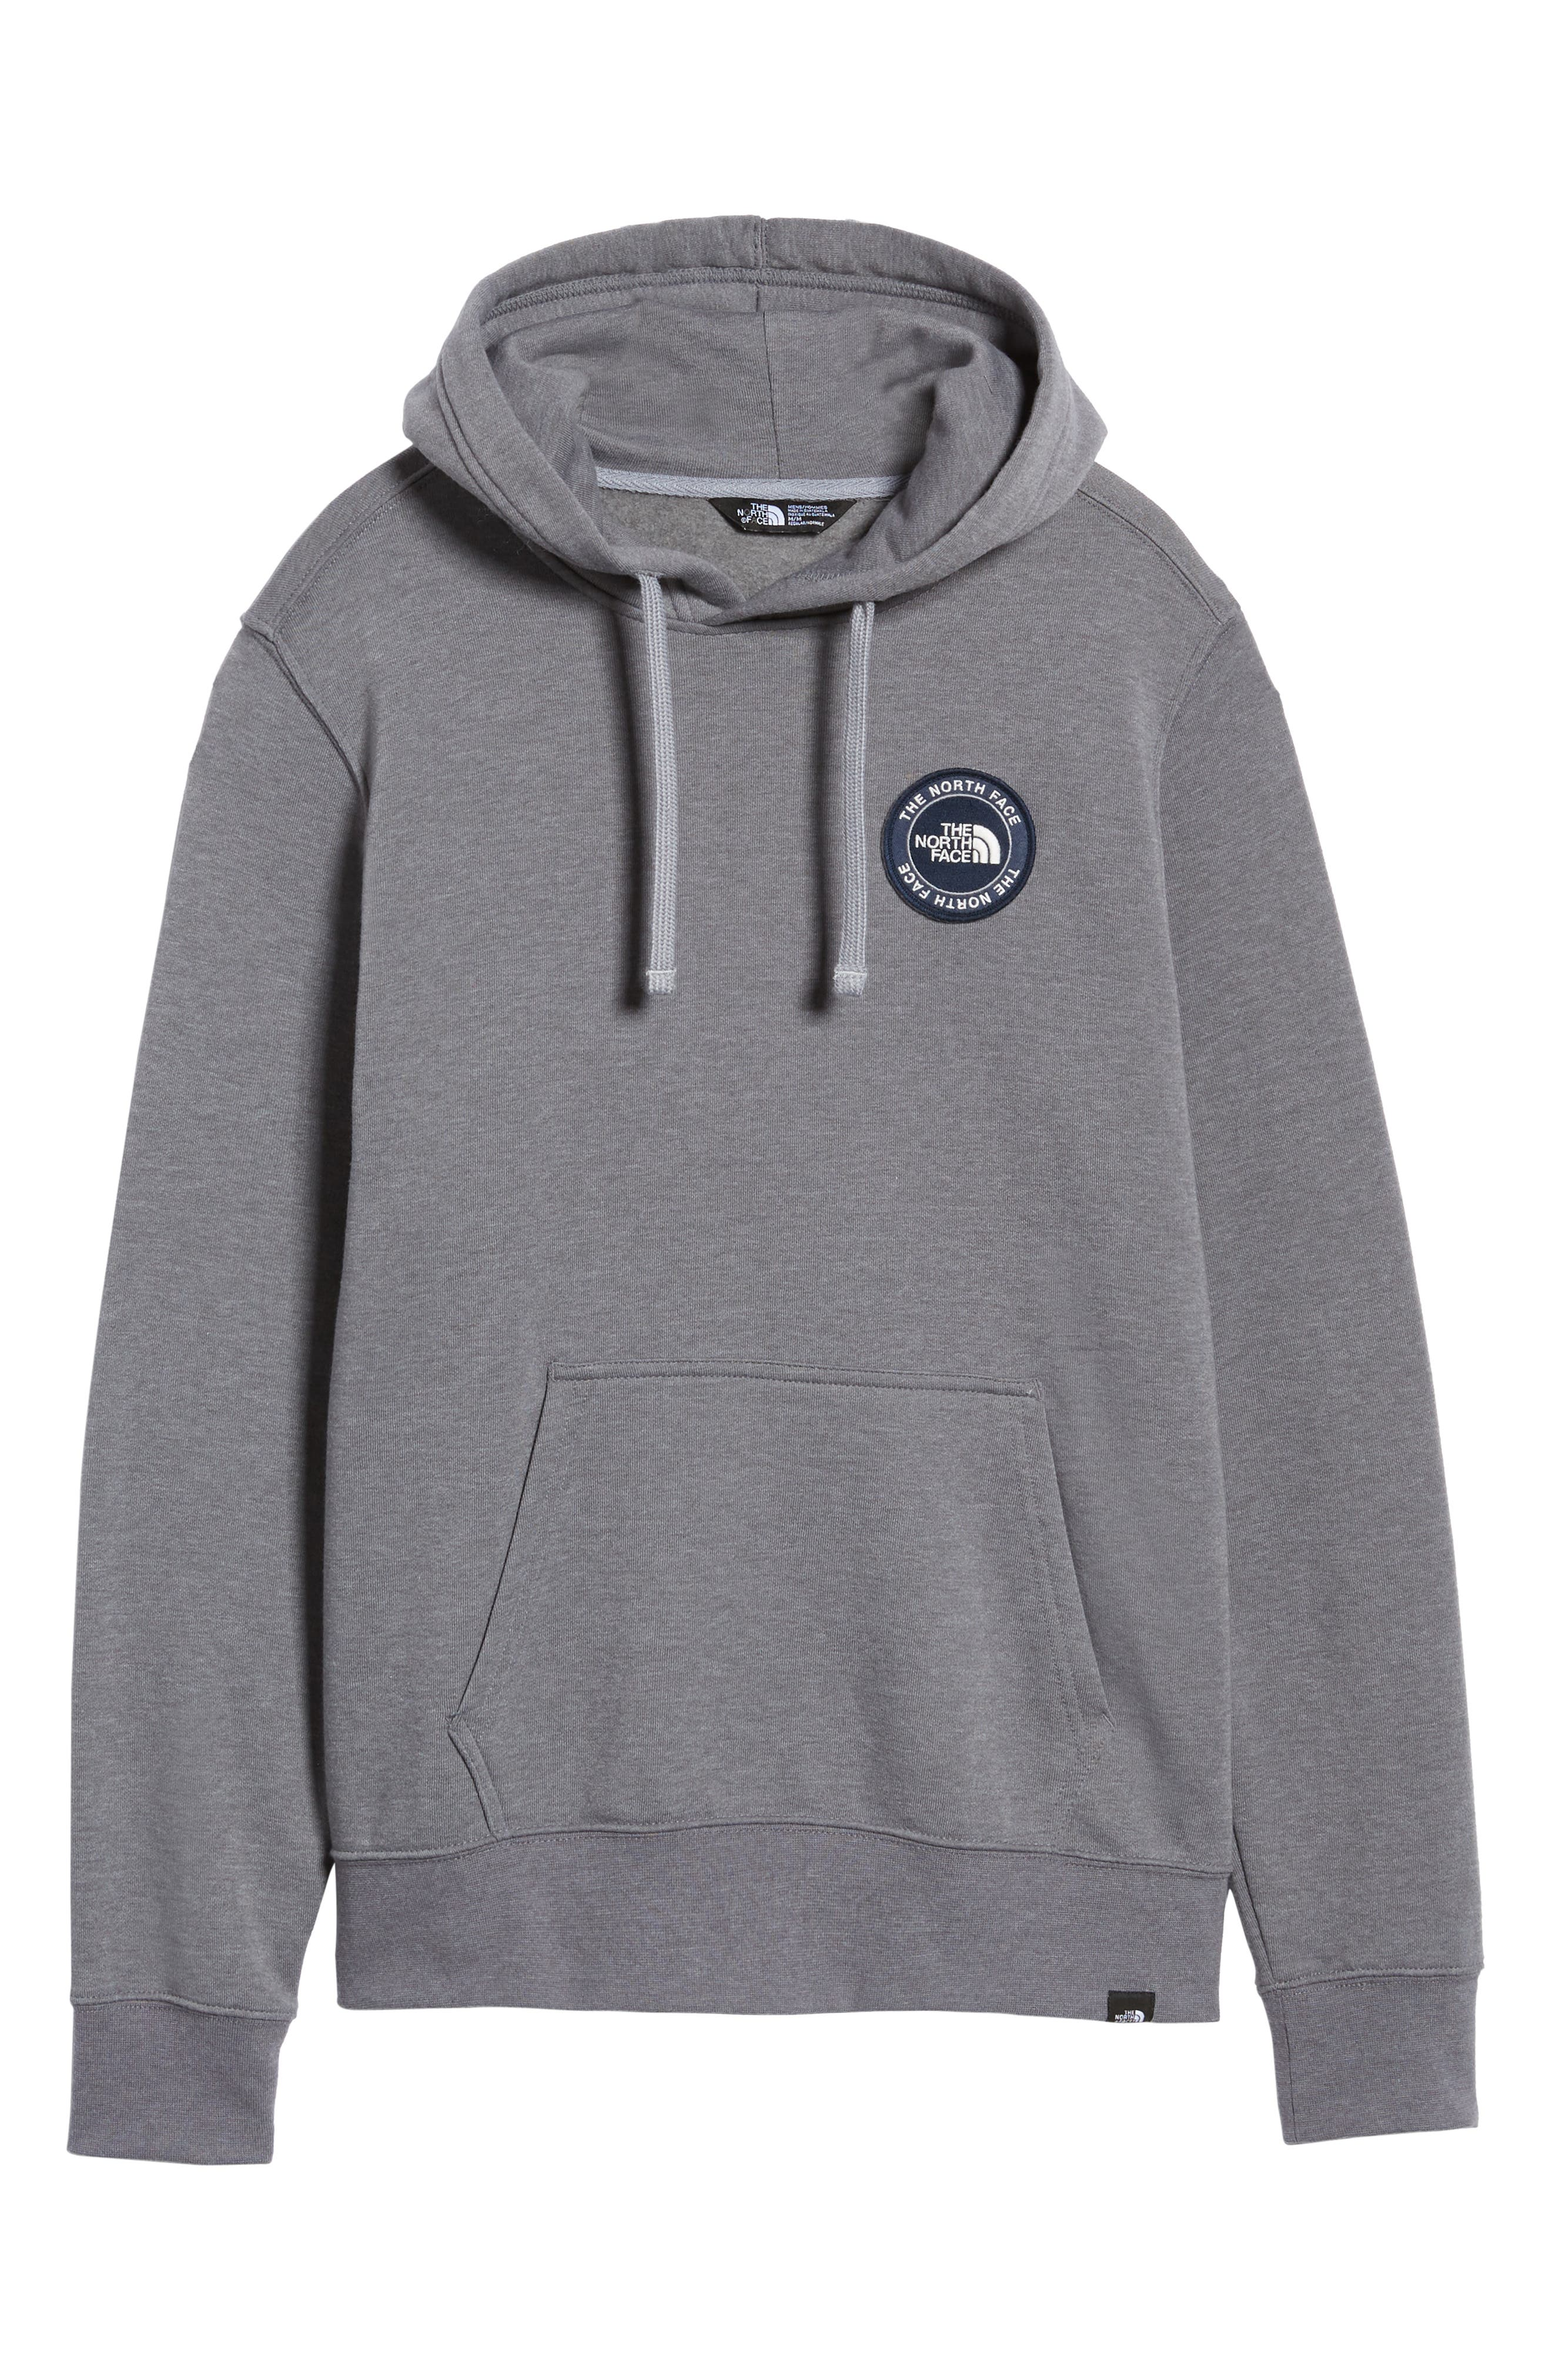 North Face Logo Patch Pullover Hoodie,                             Alternate thumbnail 6, color,                             TNF MEDIUM GREY HEATHER